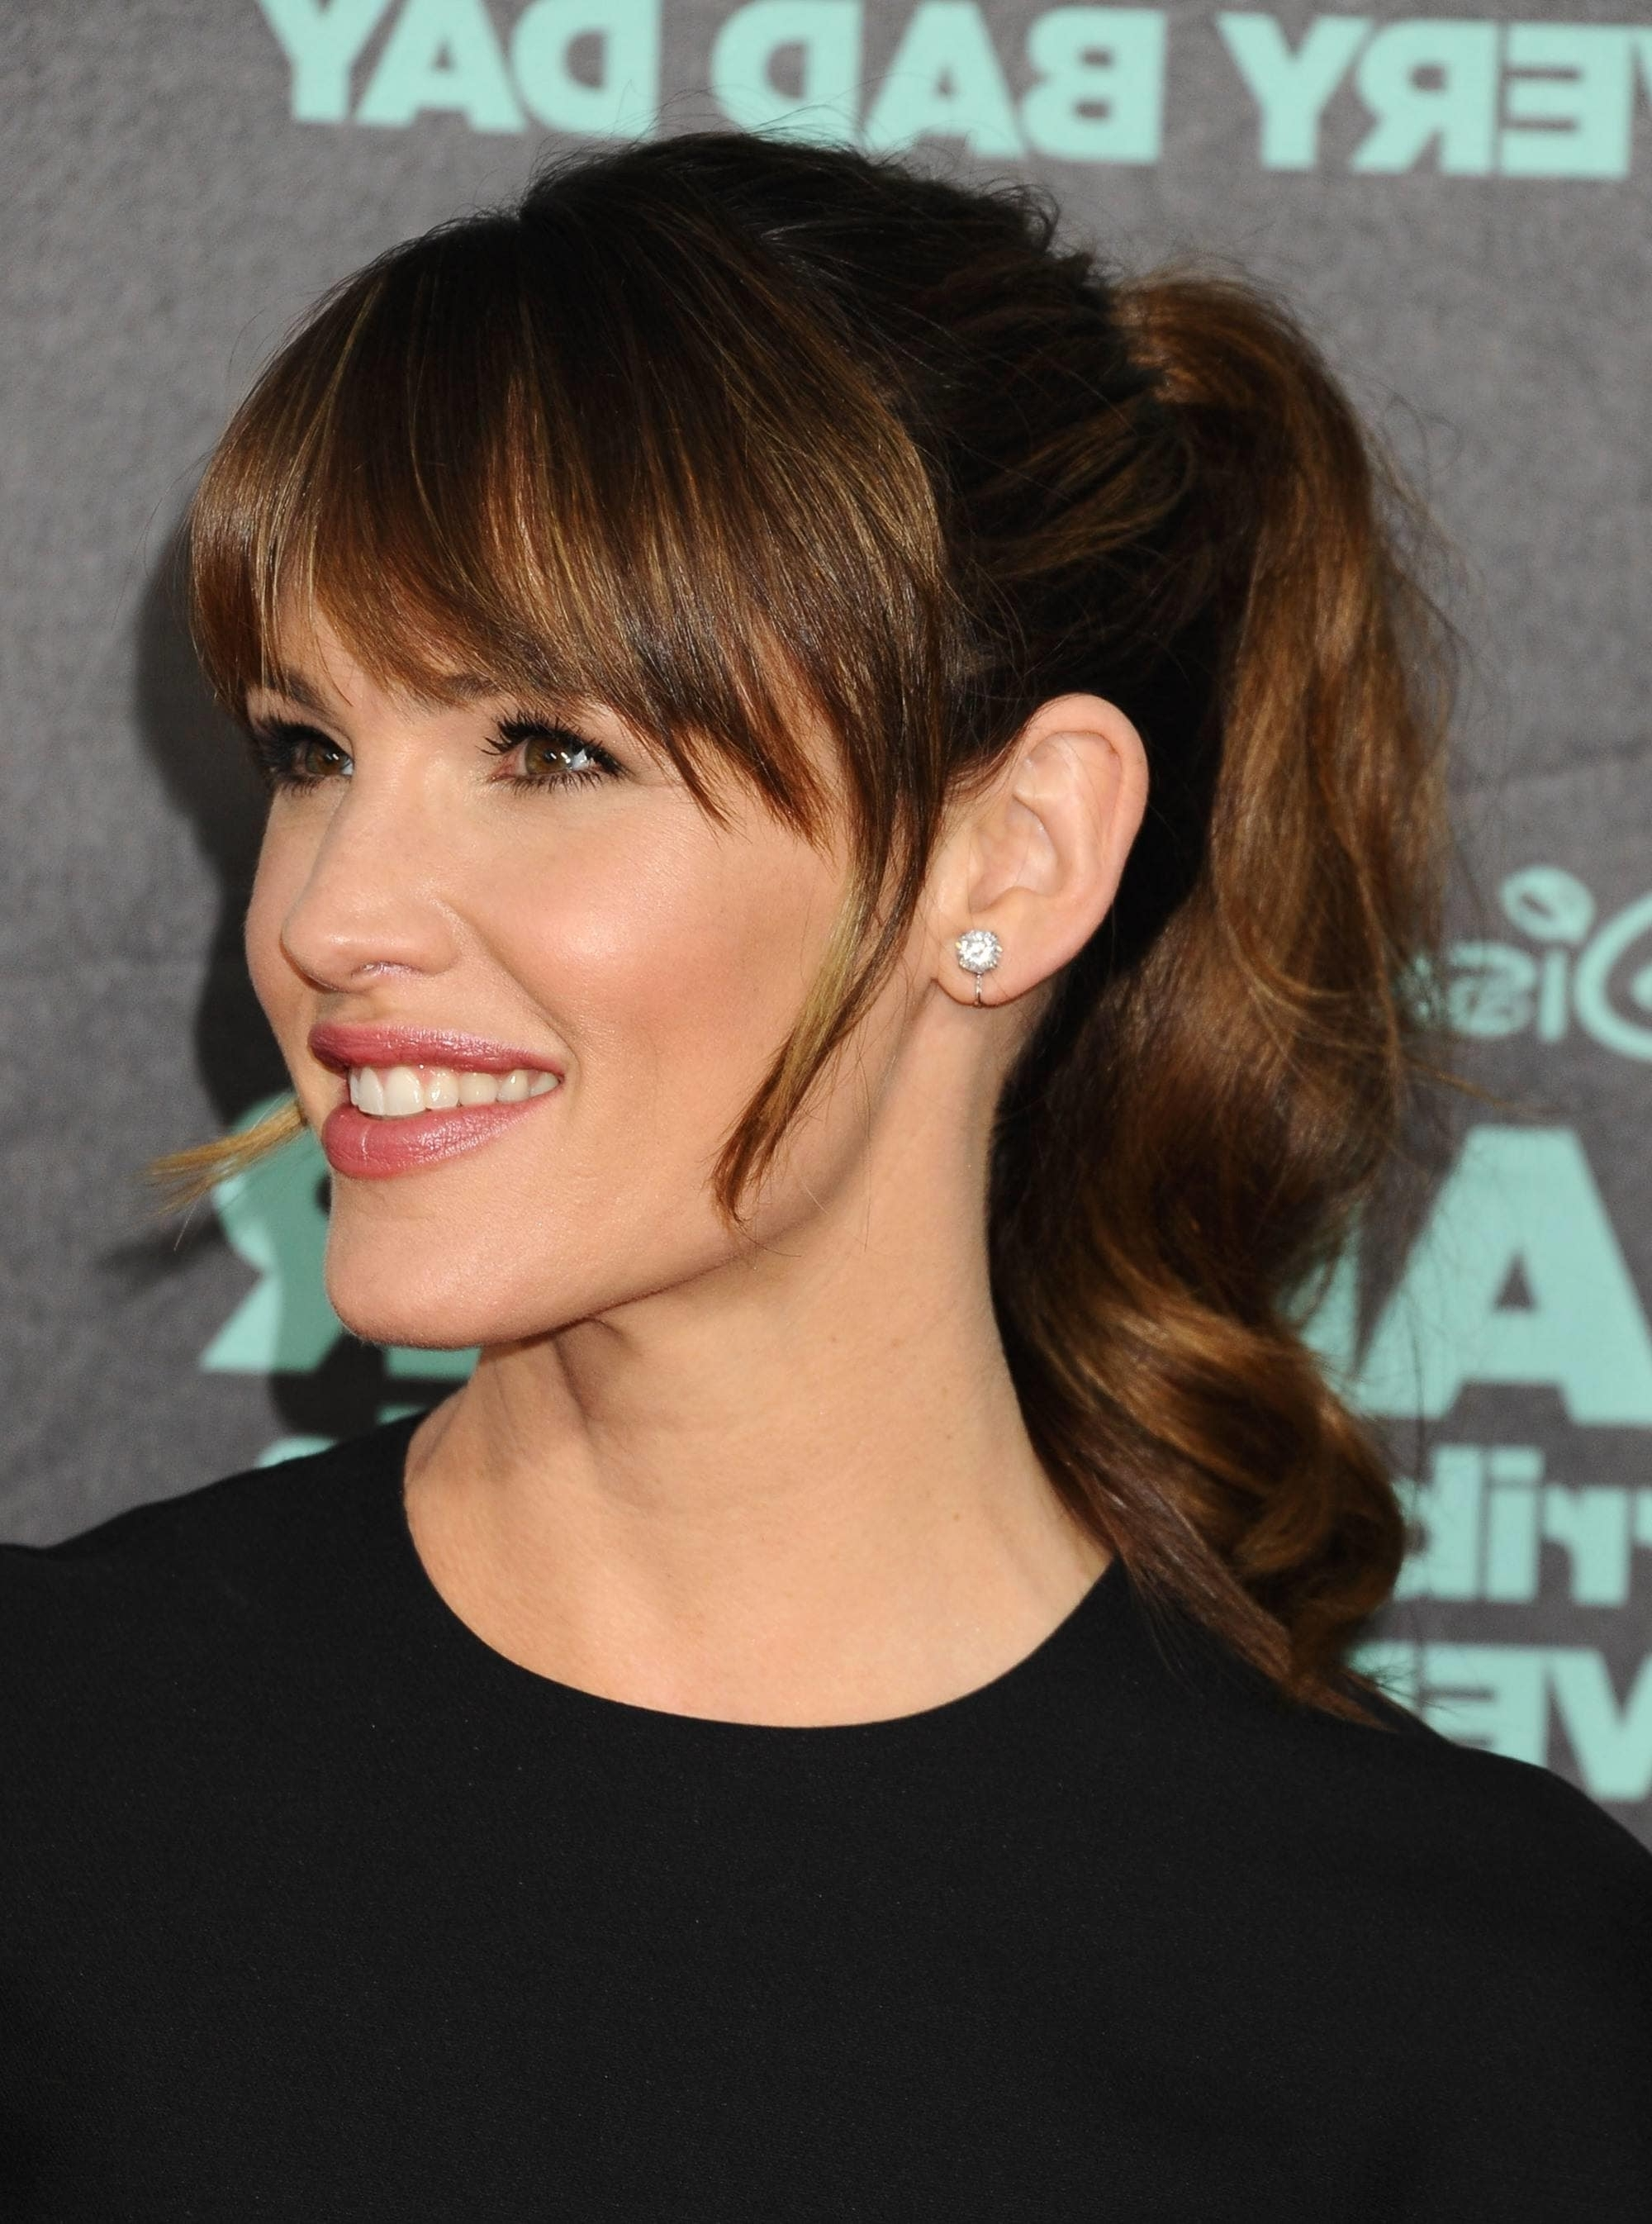 Trendy High Ponytail Hairstyles With Side Bangs For Ponytail With Bangs: 7 Fresh New Ways To Wear The Style (View 18 of 20)